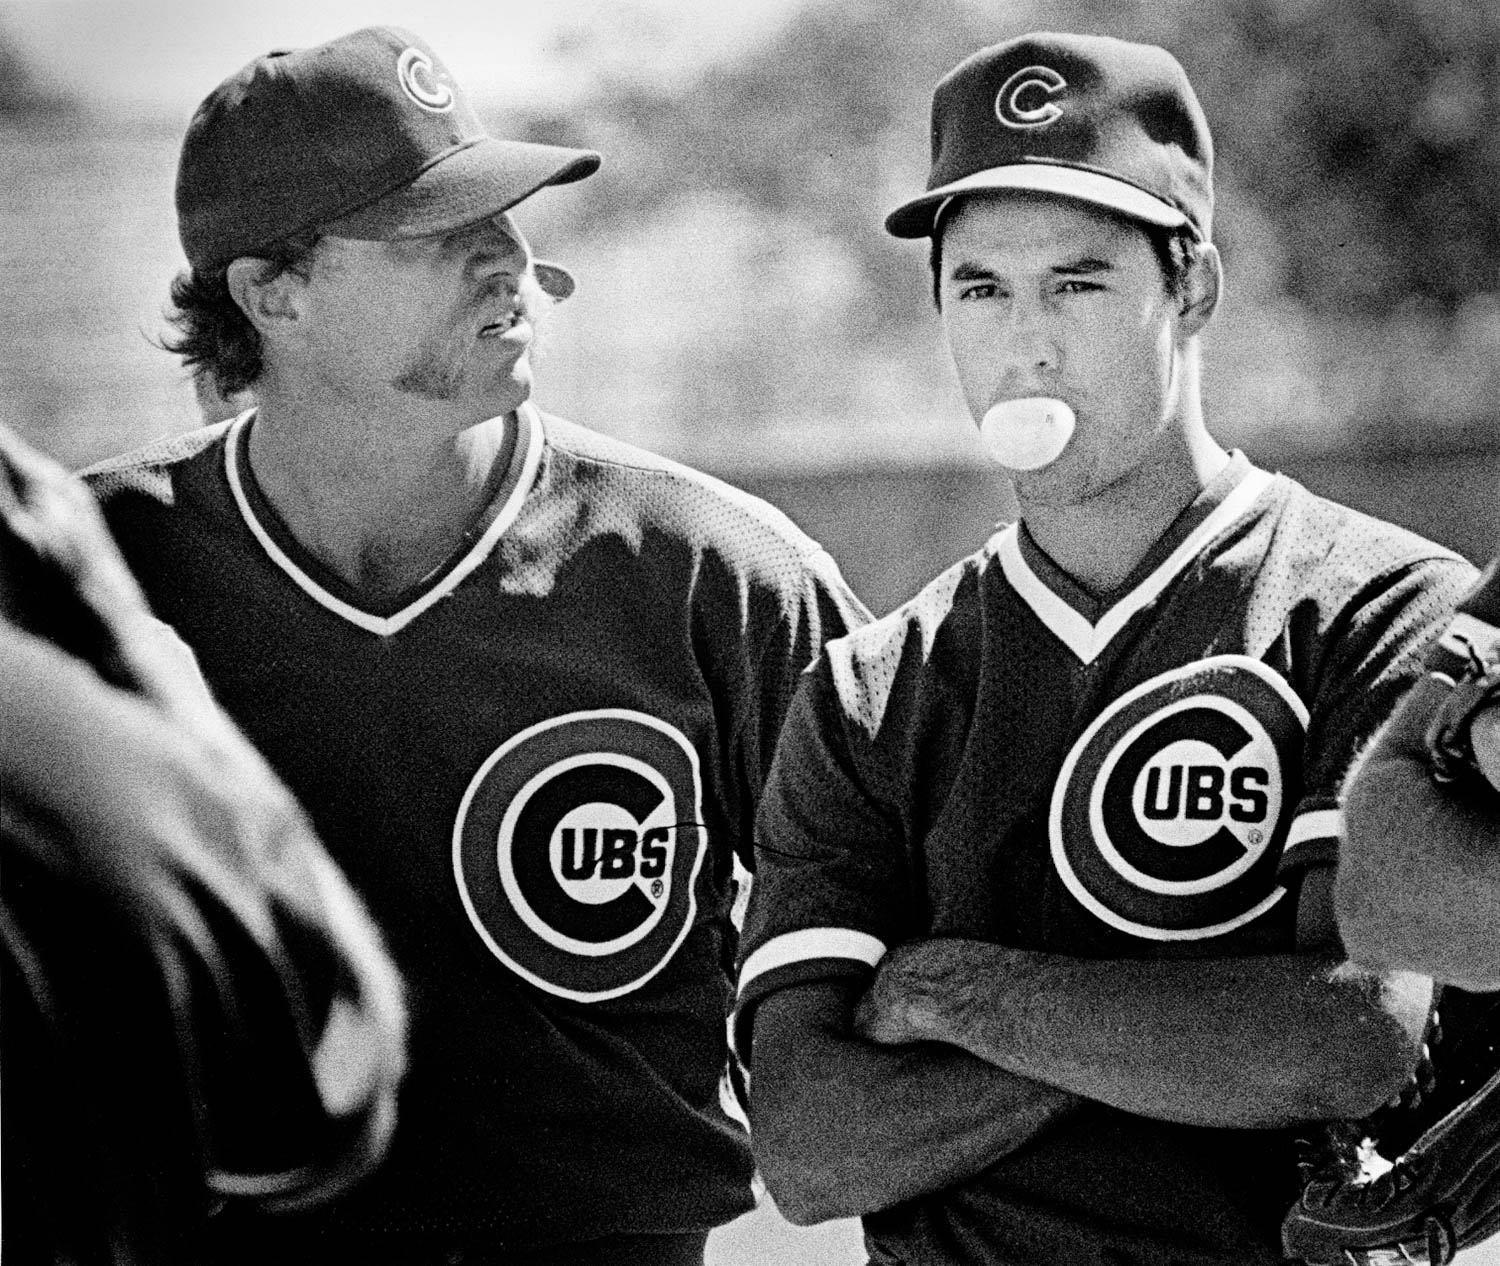 Future Hall of Famers - Veteran Cubs pitcher Goose Gossage reacts quizzically to third-year starter Greg Maddux blowing a bubble during a spring training workout in Mesa, Az. Both pitchers have since been inducted into the Baseball Hall of Fame. Gossage was inducted in 2008 and Maddux in 2014. (Todd Mizener)